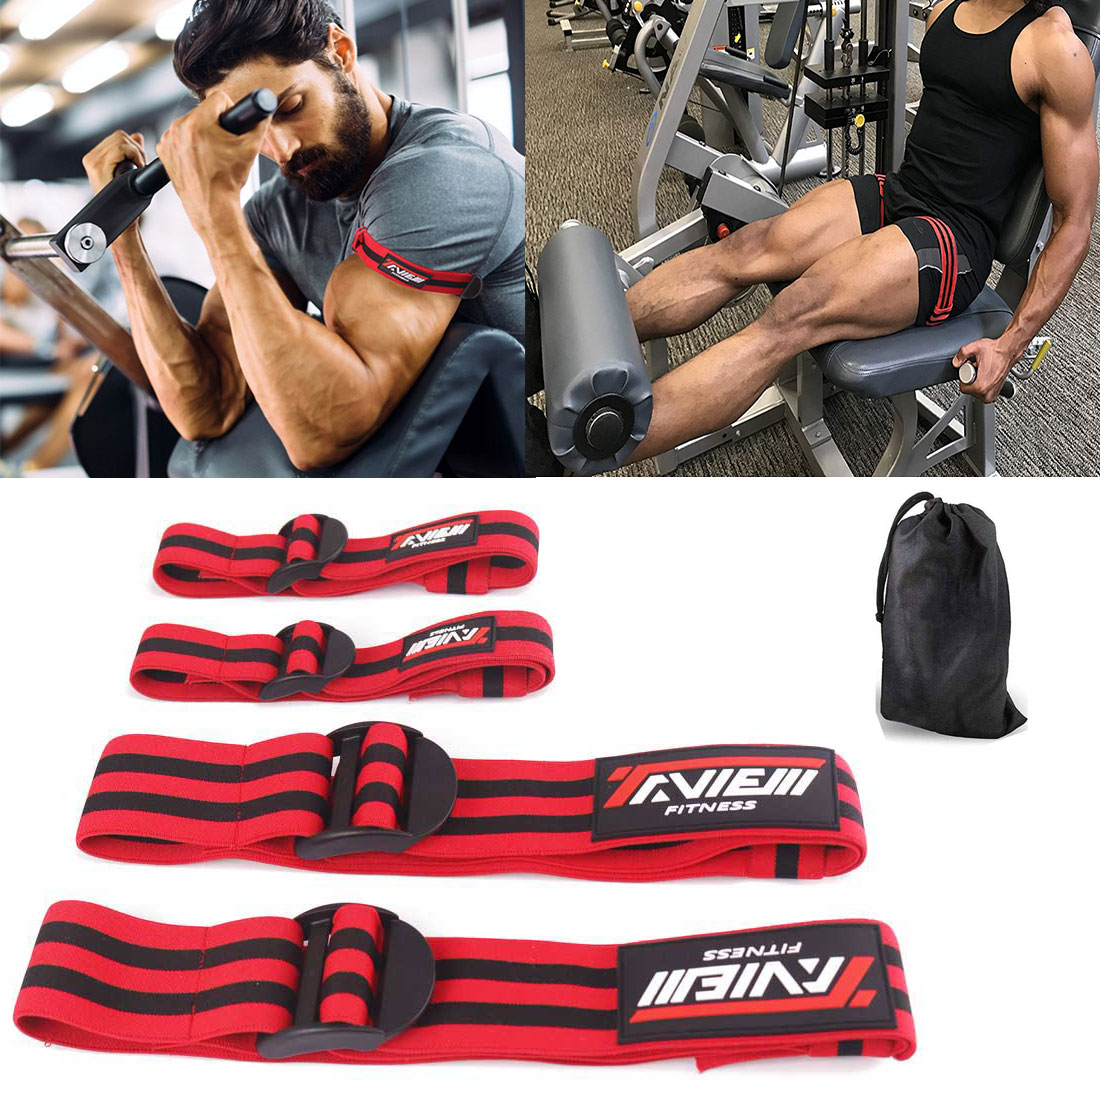 Fitness Occlusion Training Bands Bodybuilding Weightlifting Blood Flow Restriction Bands Arm Leg Wraps Muscle Train Gym Equipmen